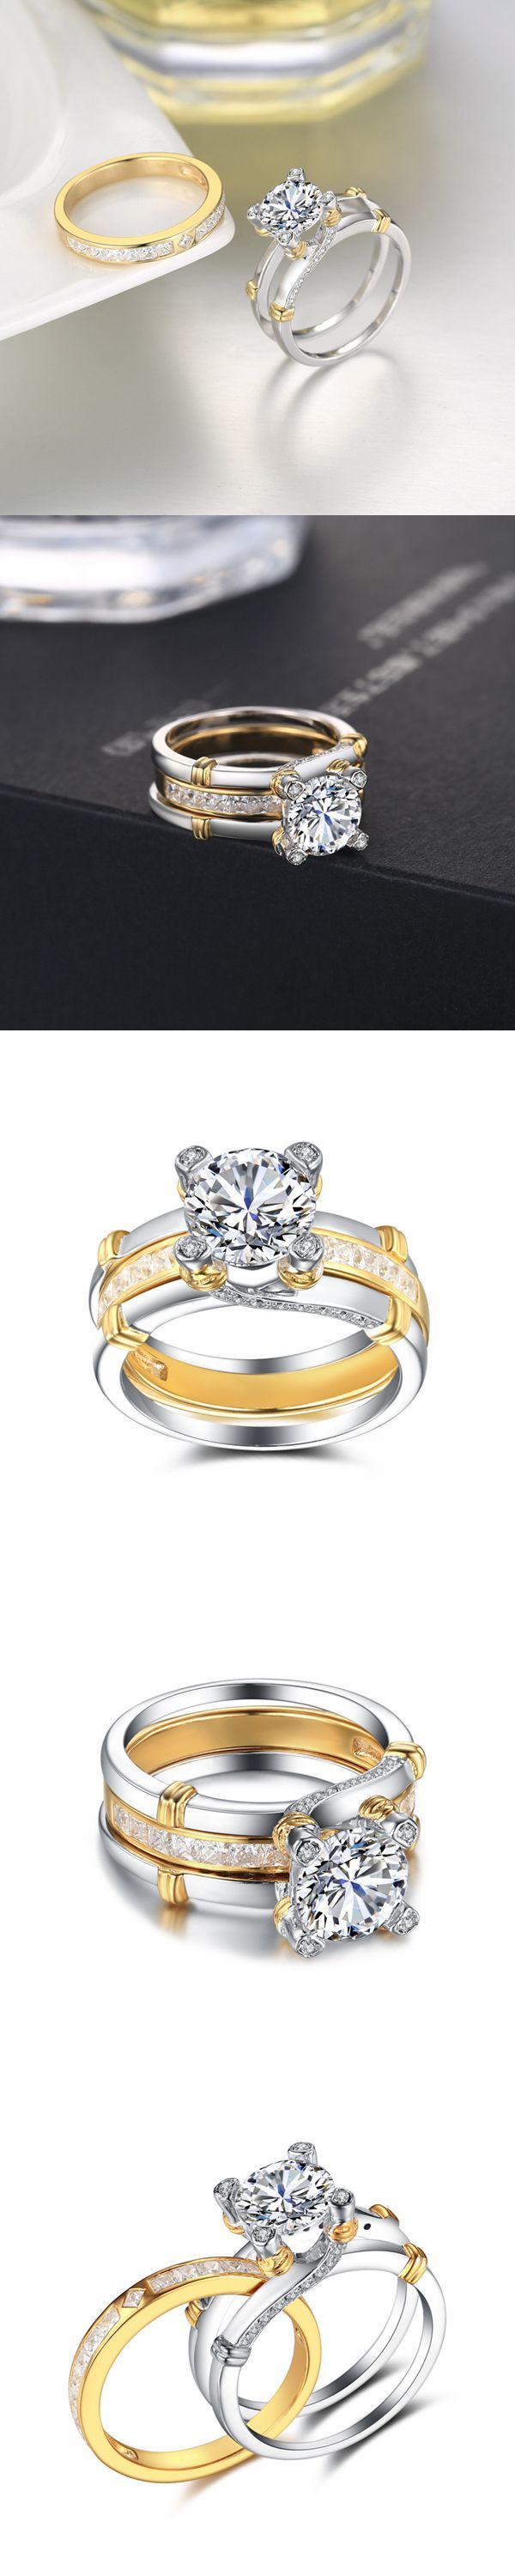 Lajerrio Jewelry Round Cut White Sapphire Gold S925 Ring Sets